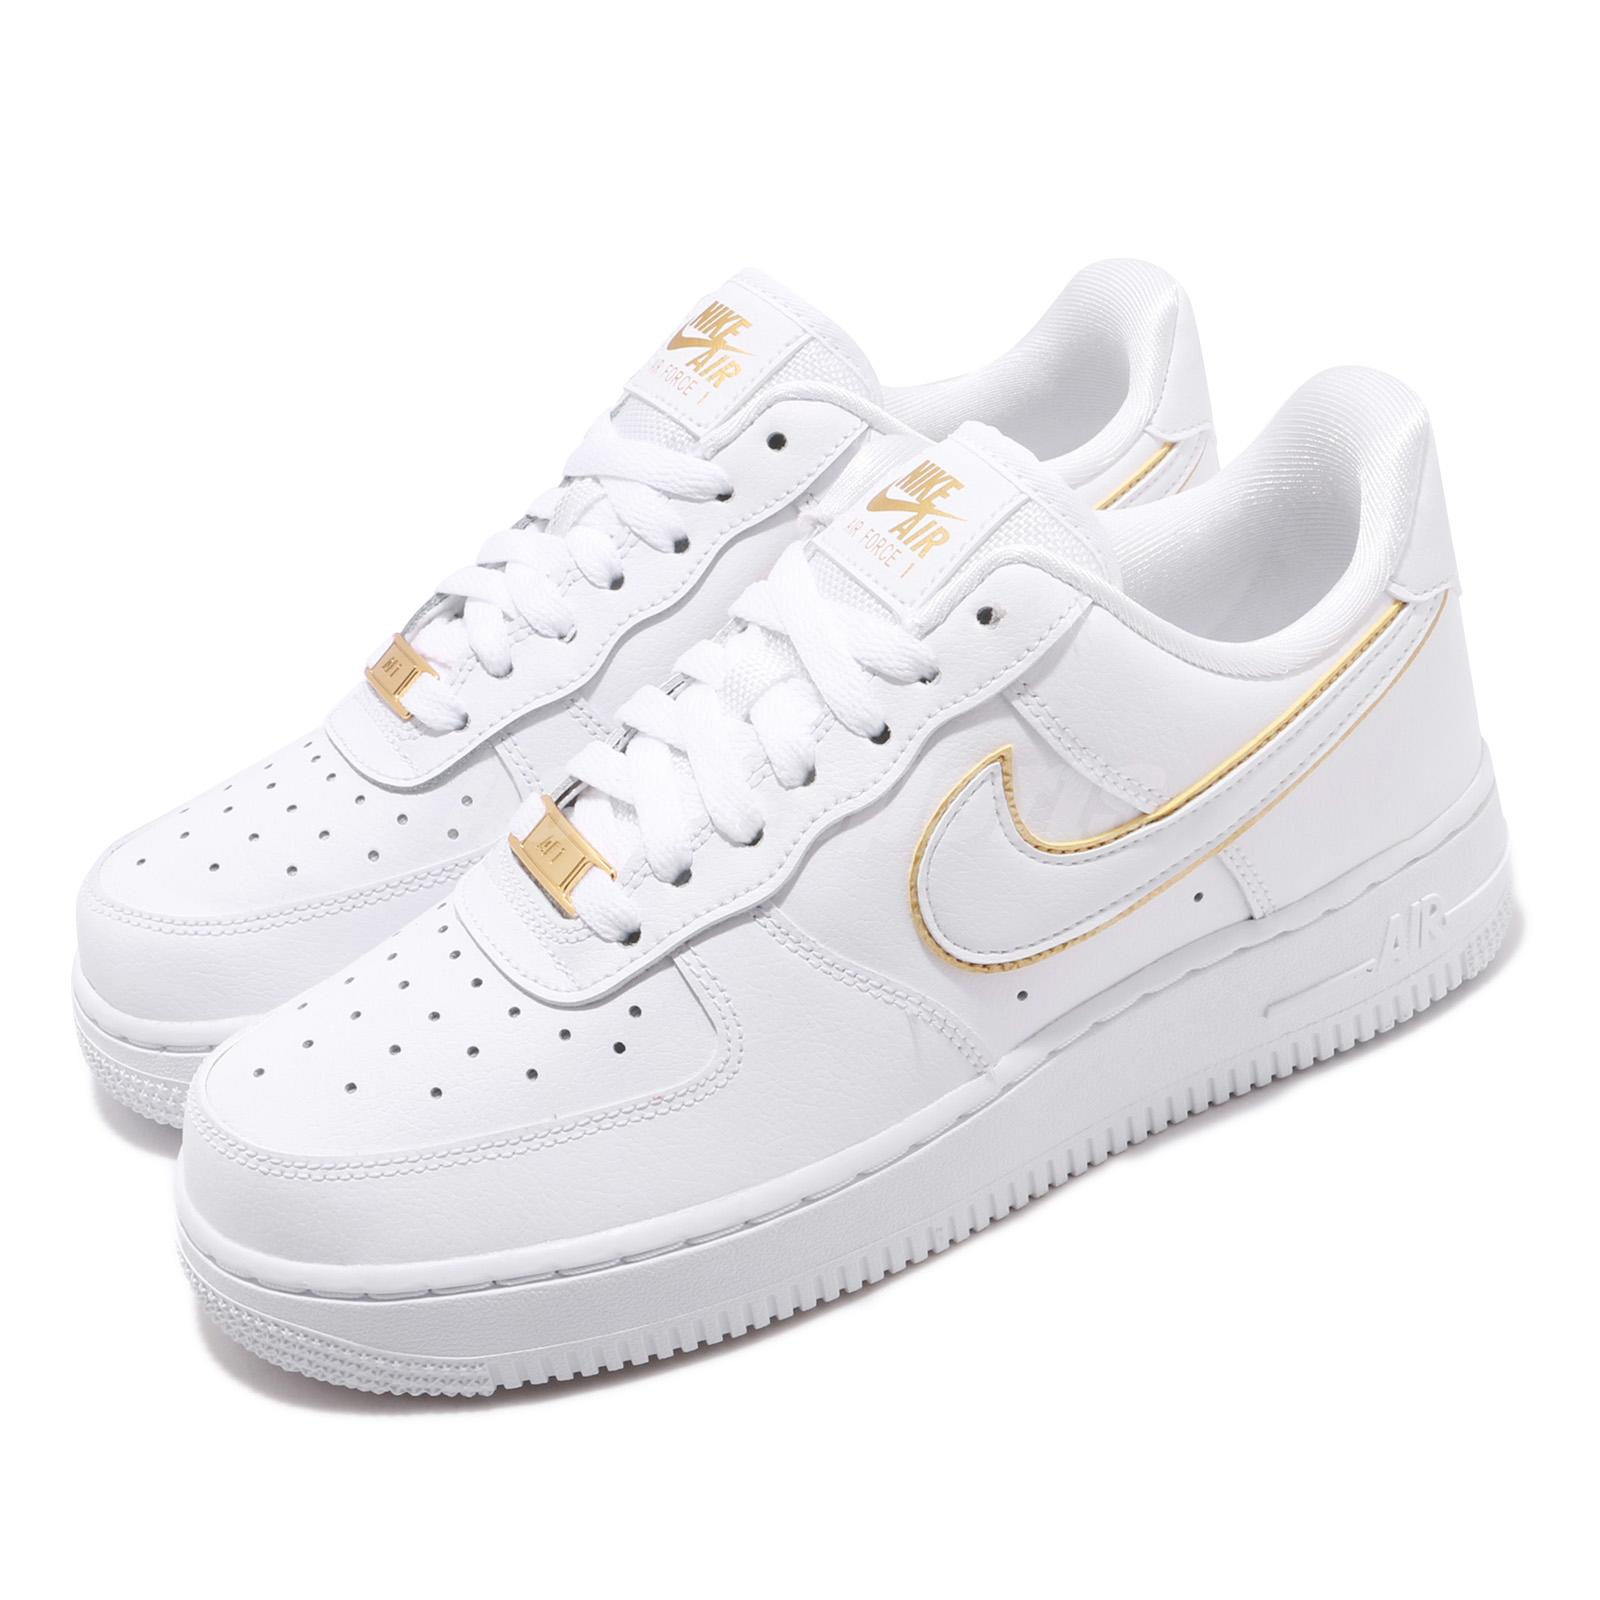 Details about Nike Wmns Air Force 1 07 ESS AF1 White Gold Women Shoes  Sneakers AO2132,102